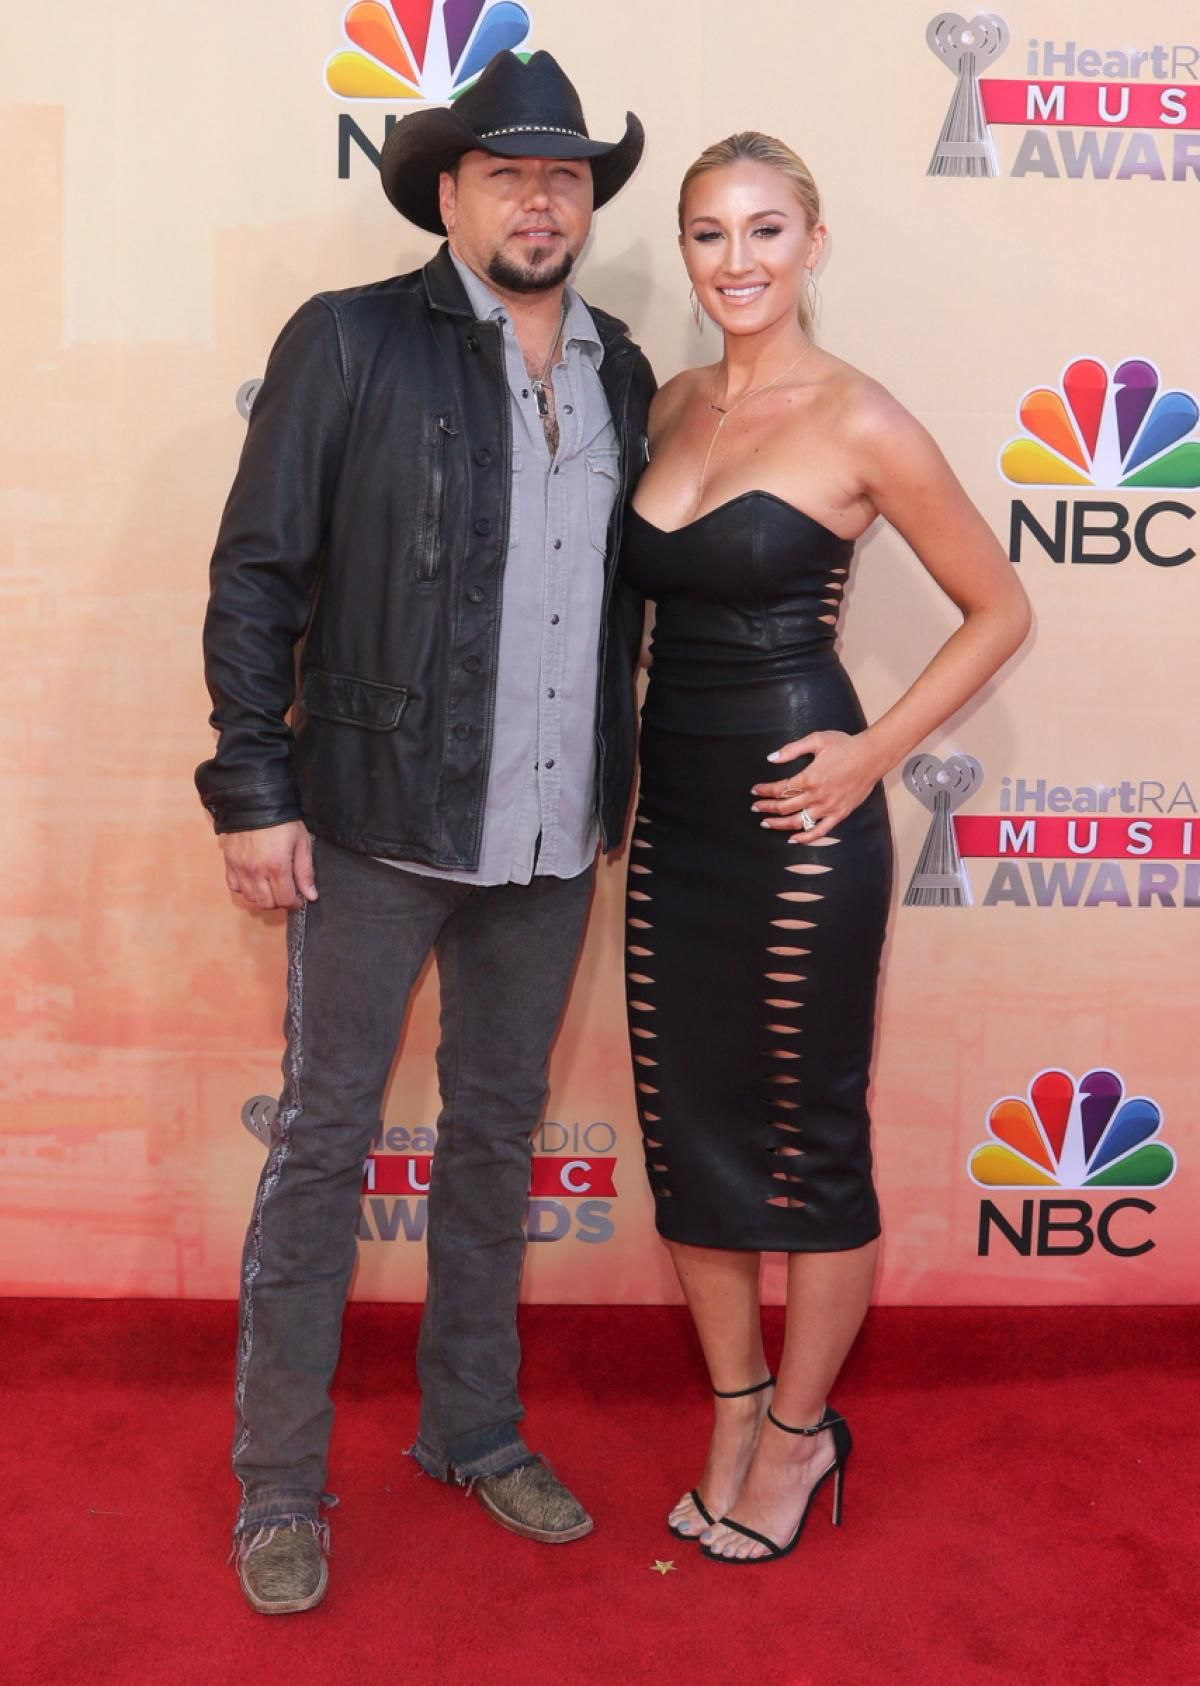 Jason Aldean and Brittany Kerr Photos iHeartRadio